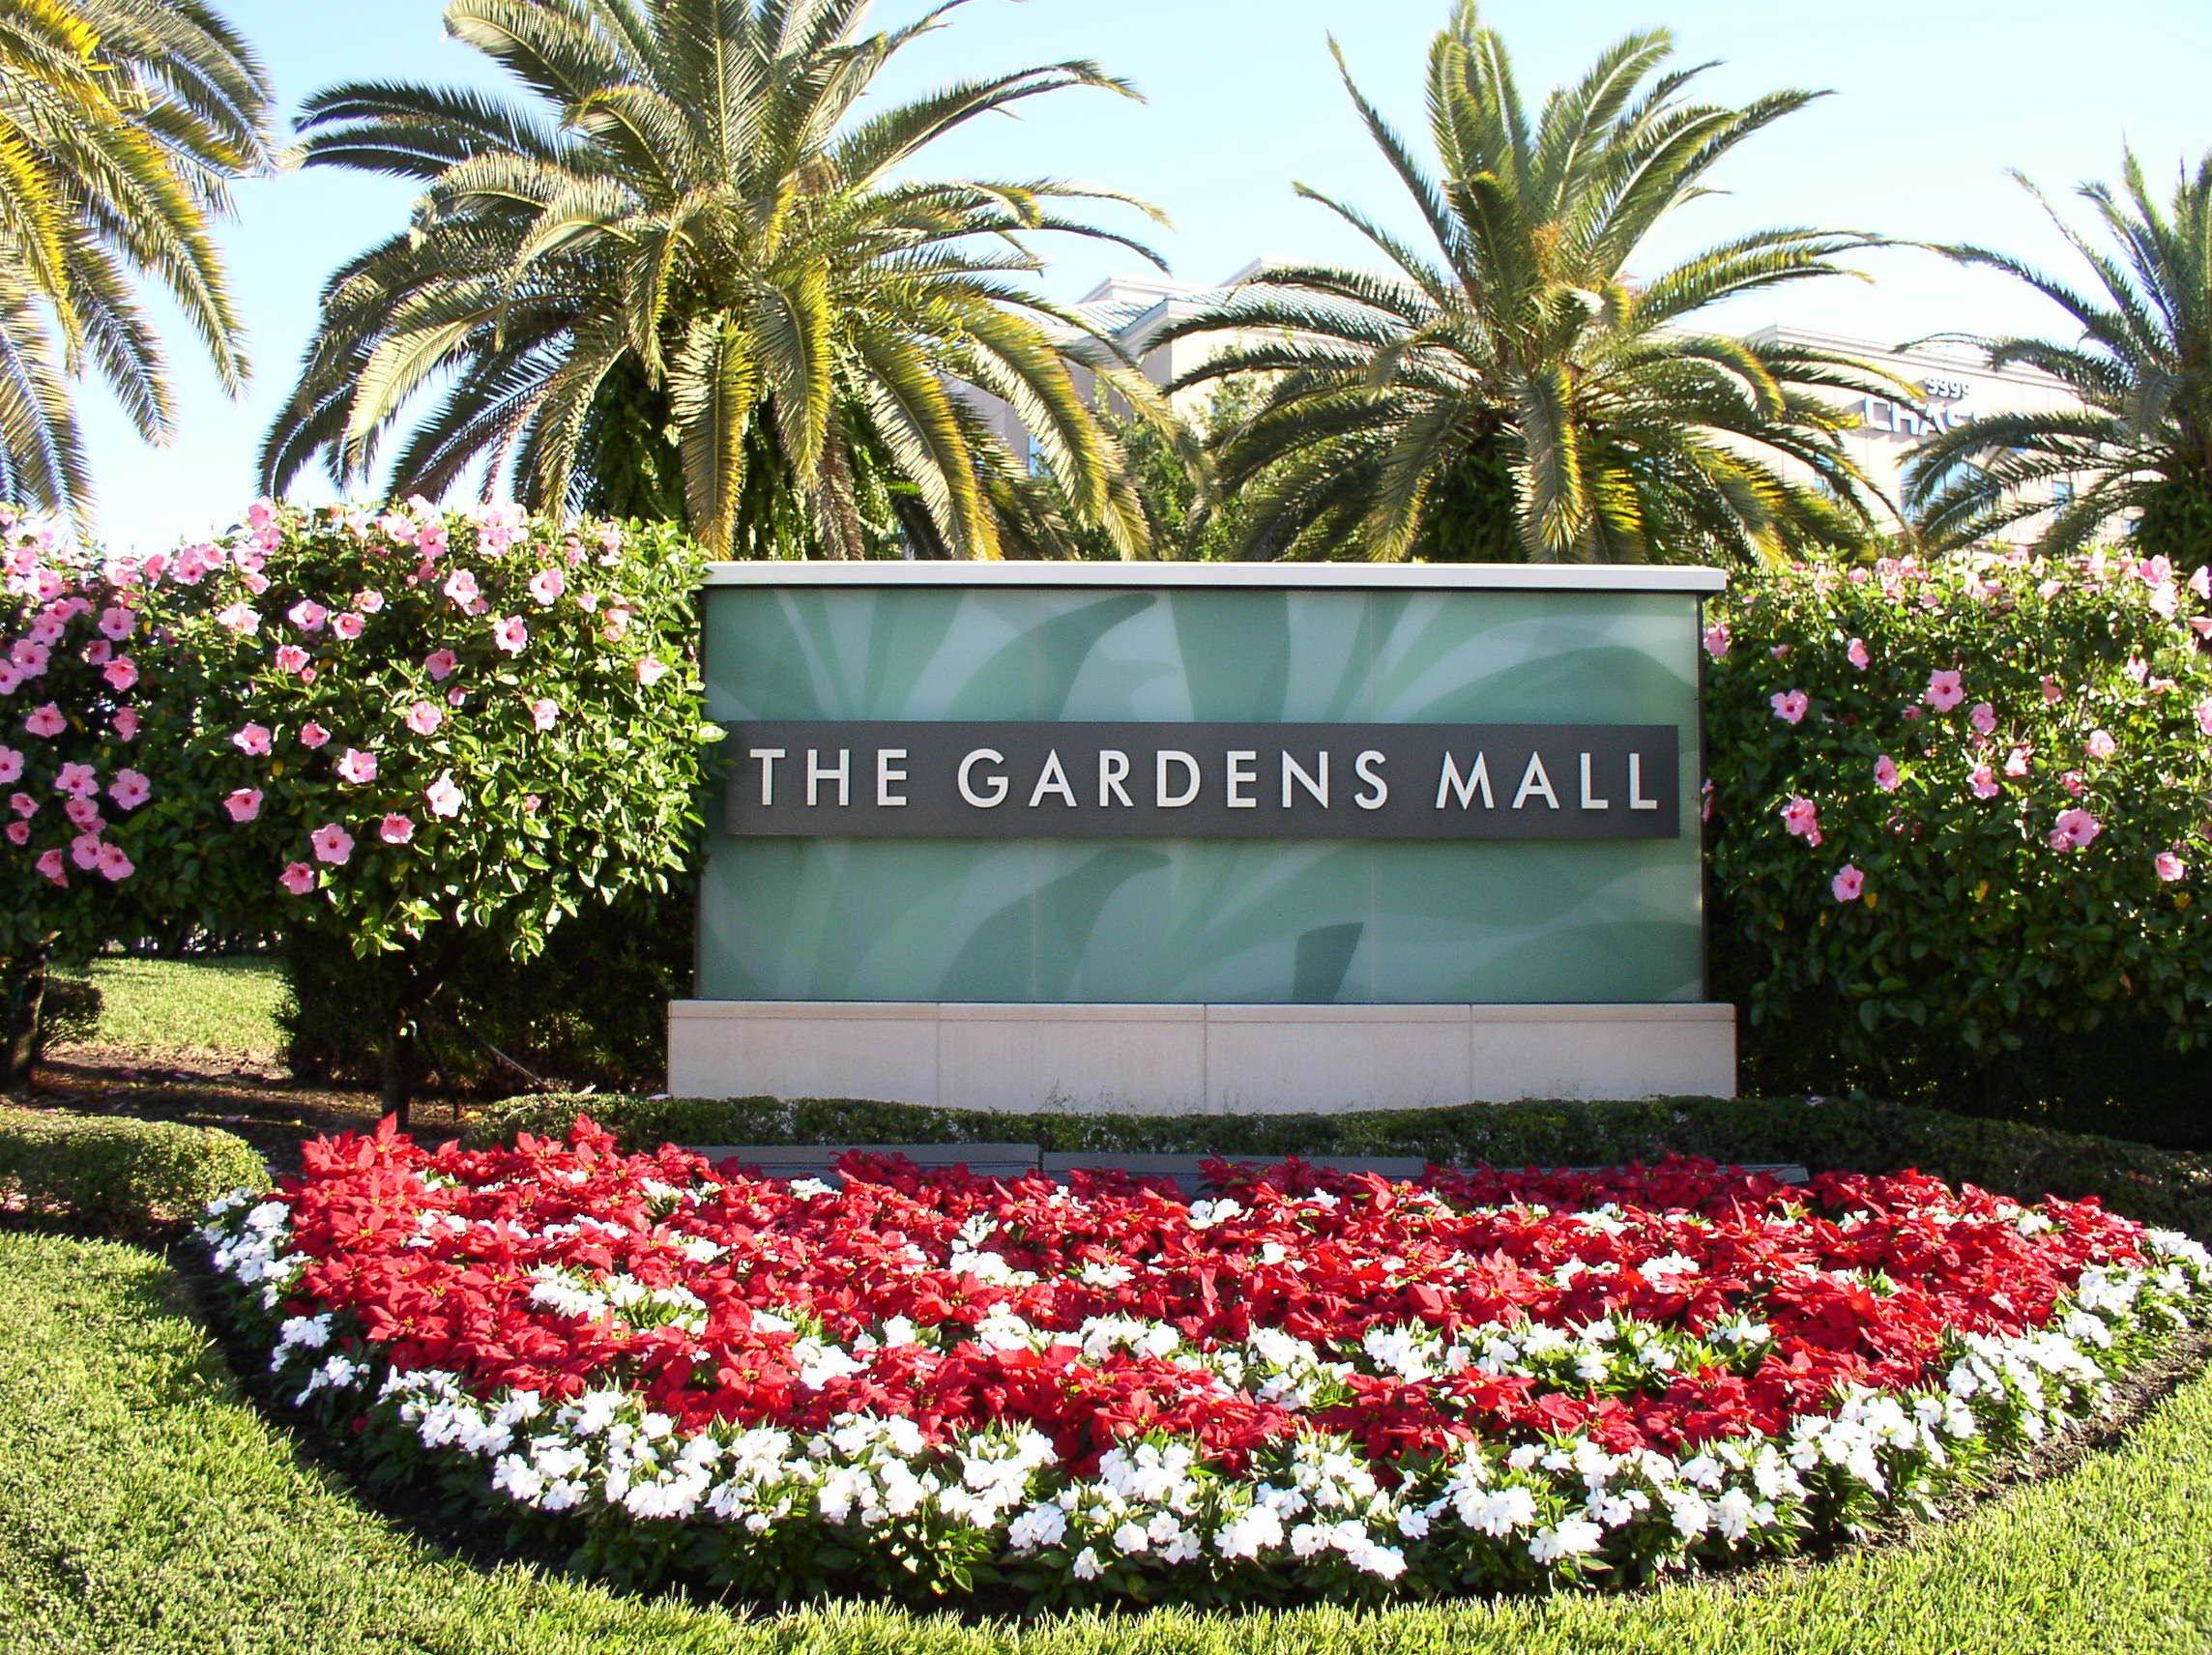 8537a389a9ce29cd30fe495625899e05 - Apartments Near Palm Beach Gardens Mall